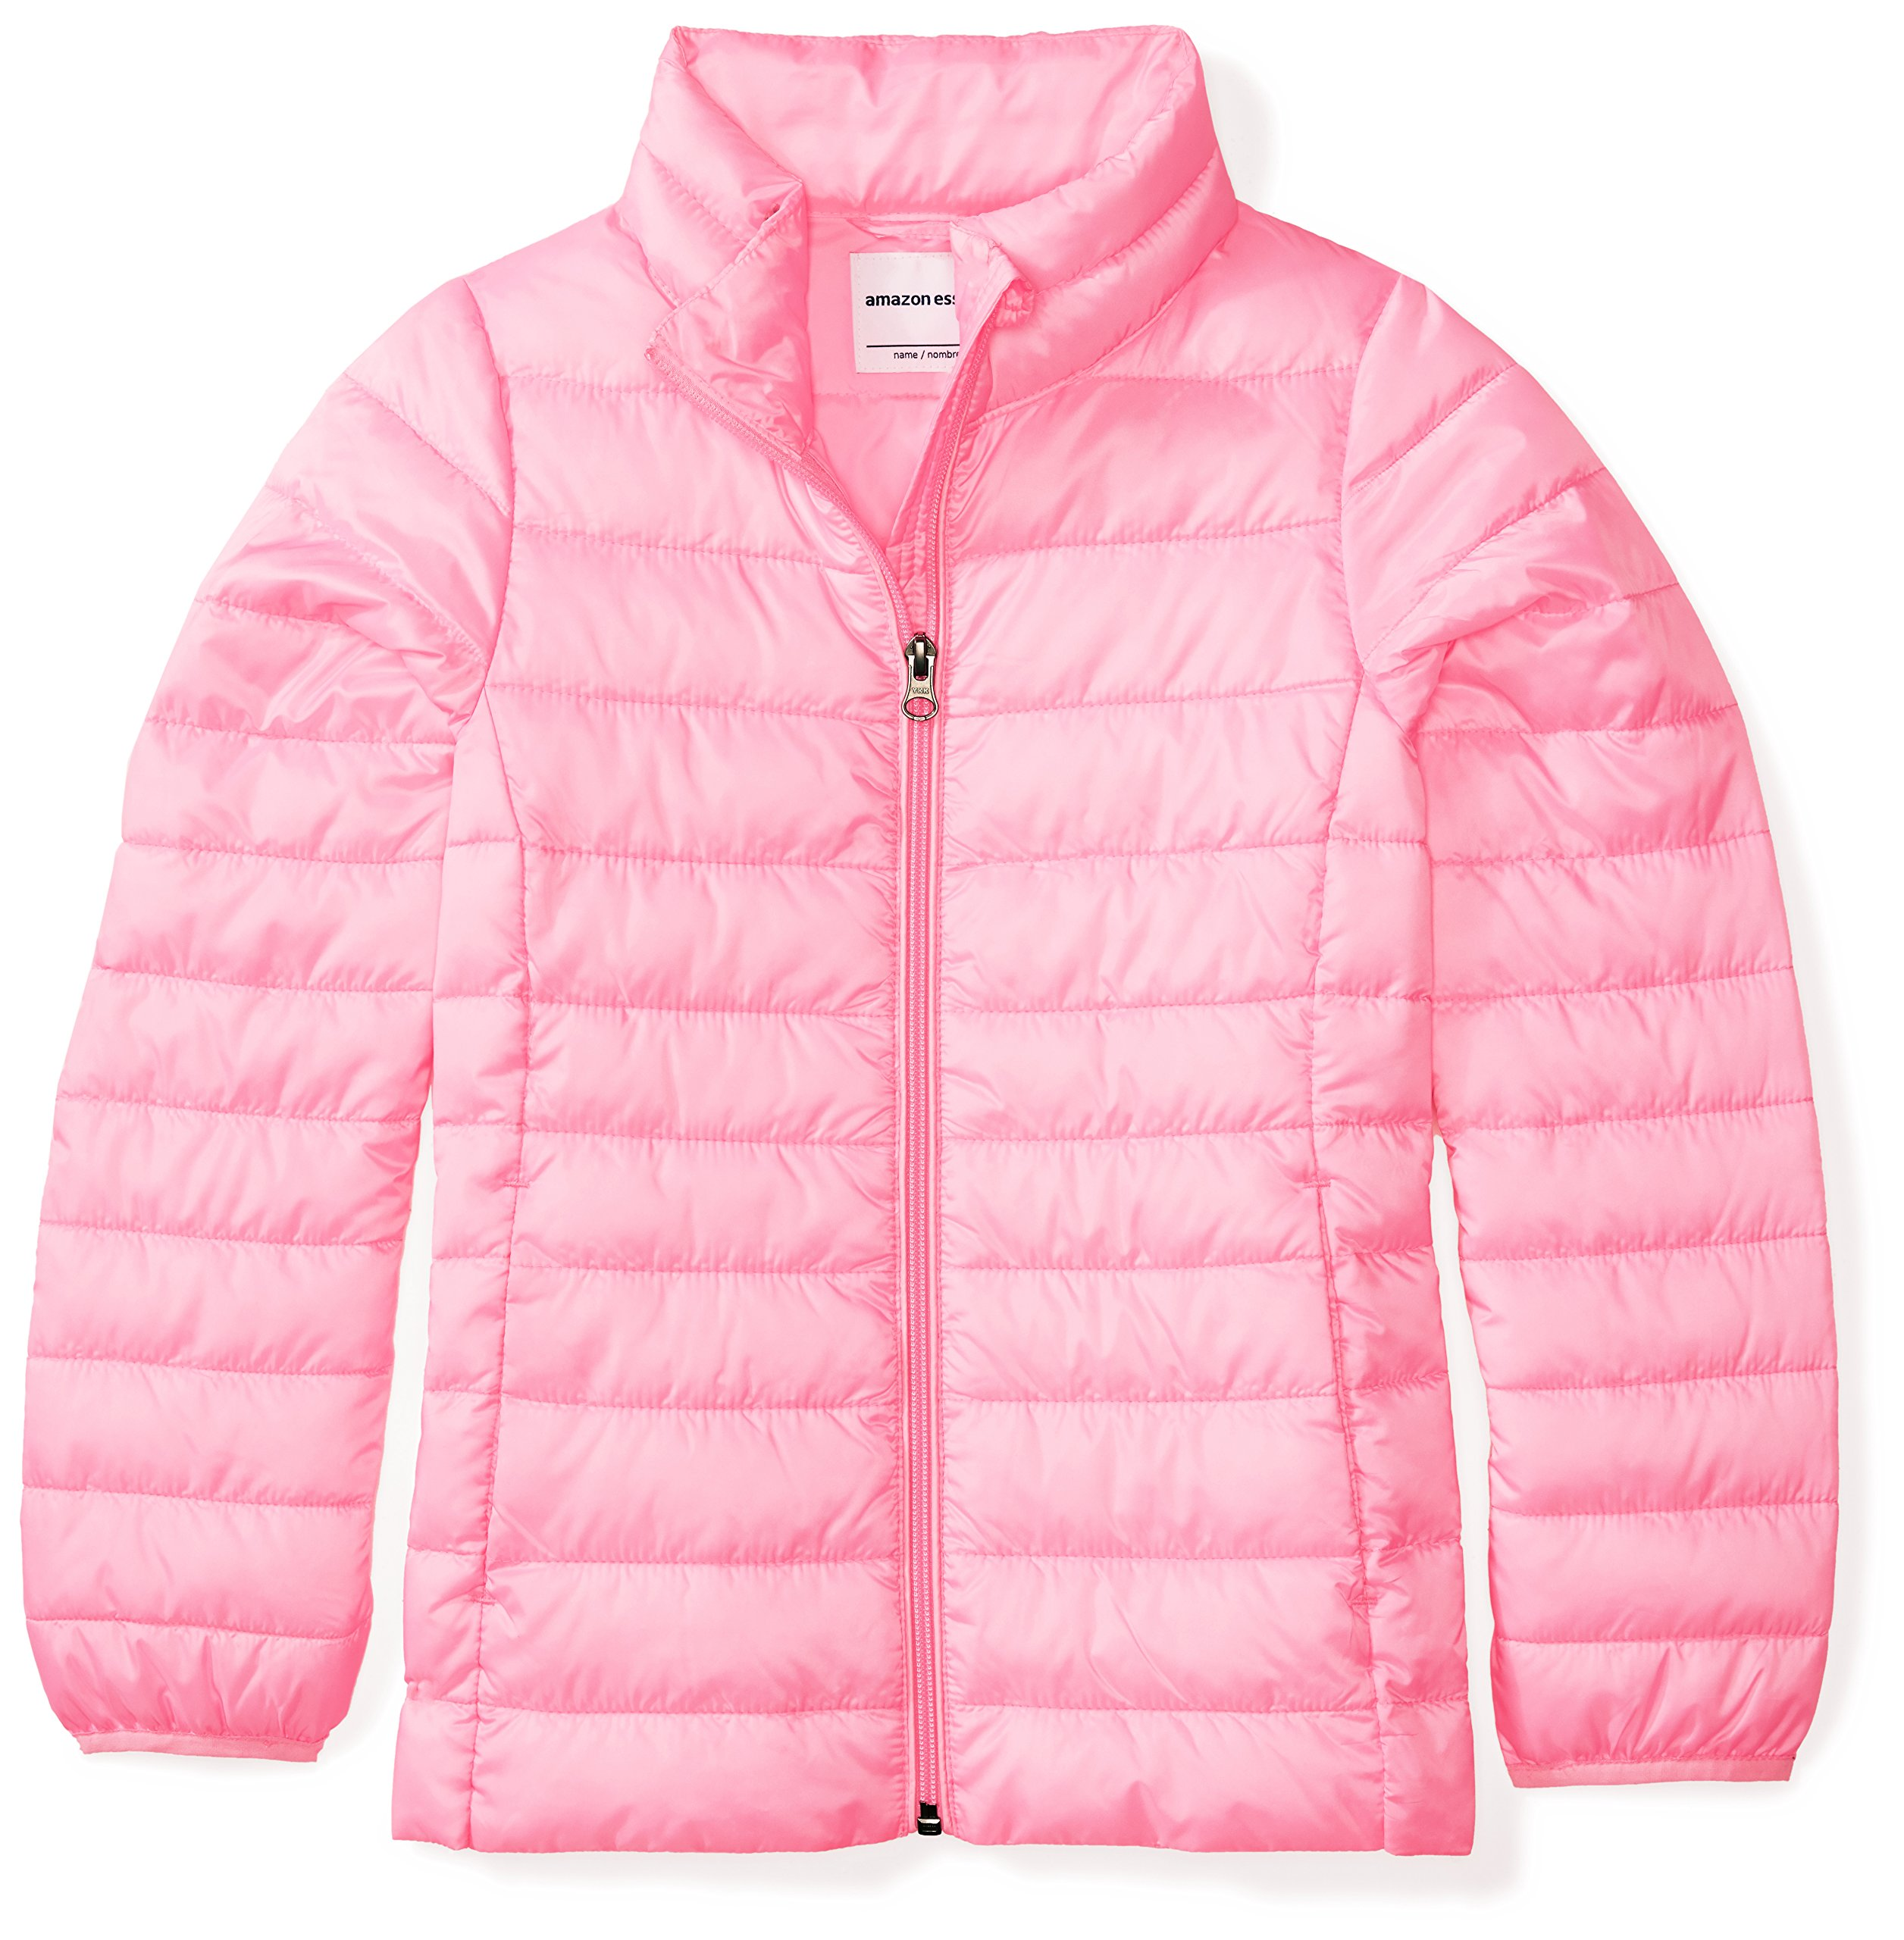 Amazon Essentials Girls' Lightweight Water-Resistant Packable Puffer Jacket, Neon Flamingo Pink, Large by Amazon Essentials